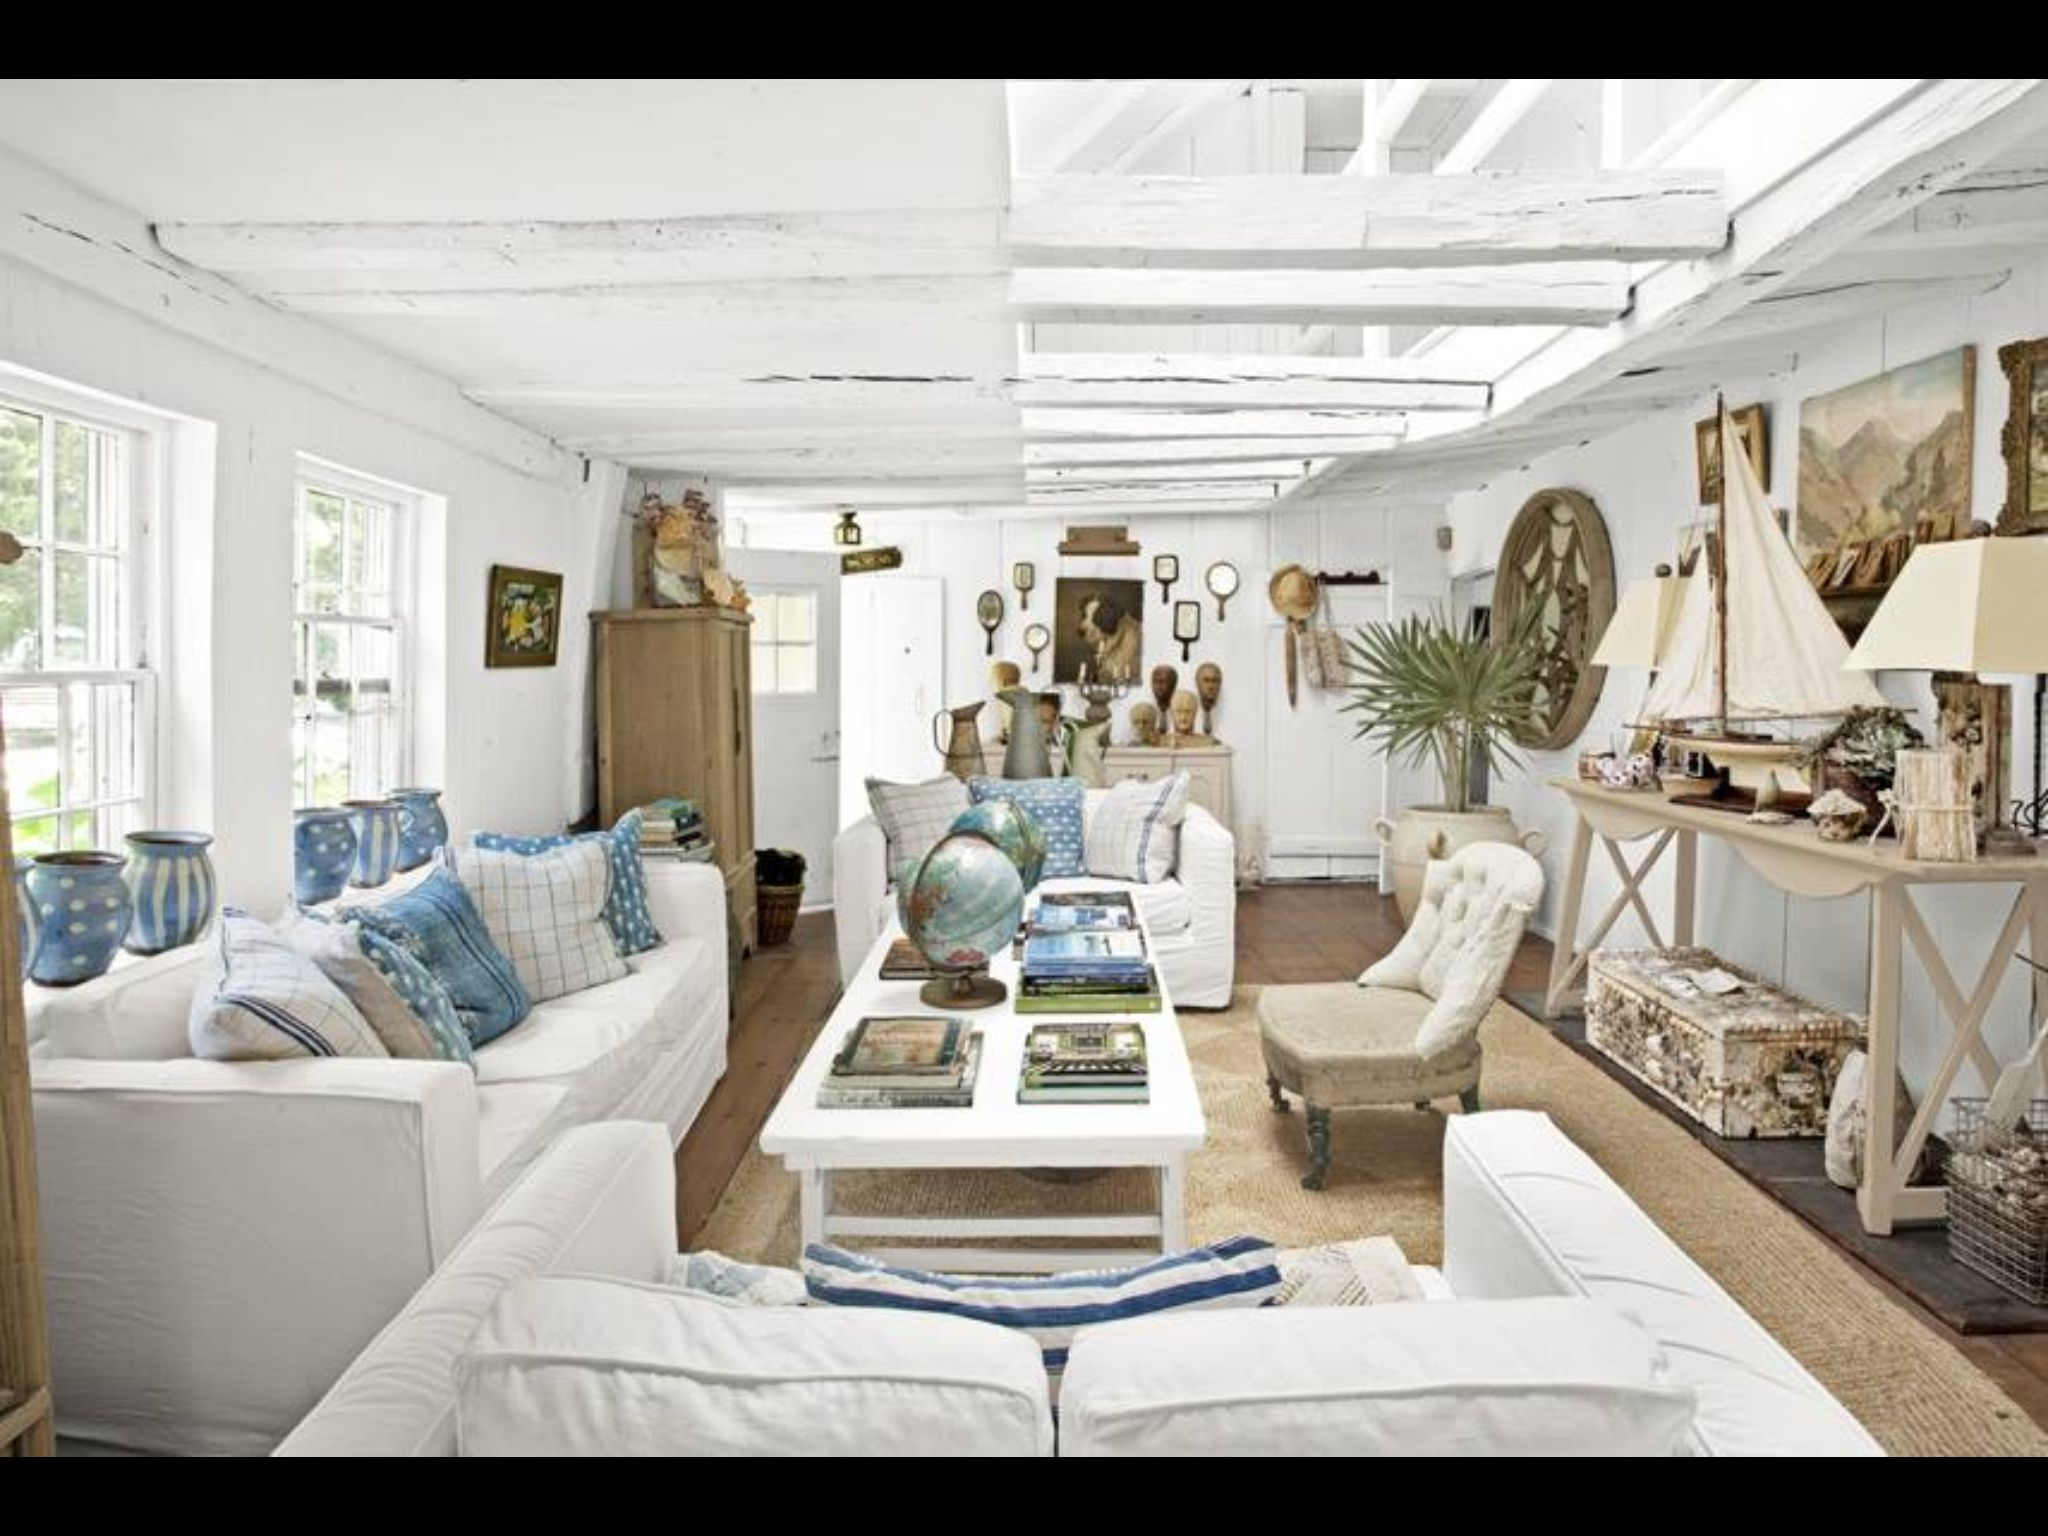 Pin by Libby Greensmith on Sunroom | Pinterest | Beach cottages ...